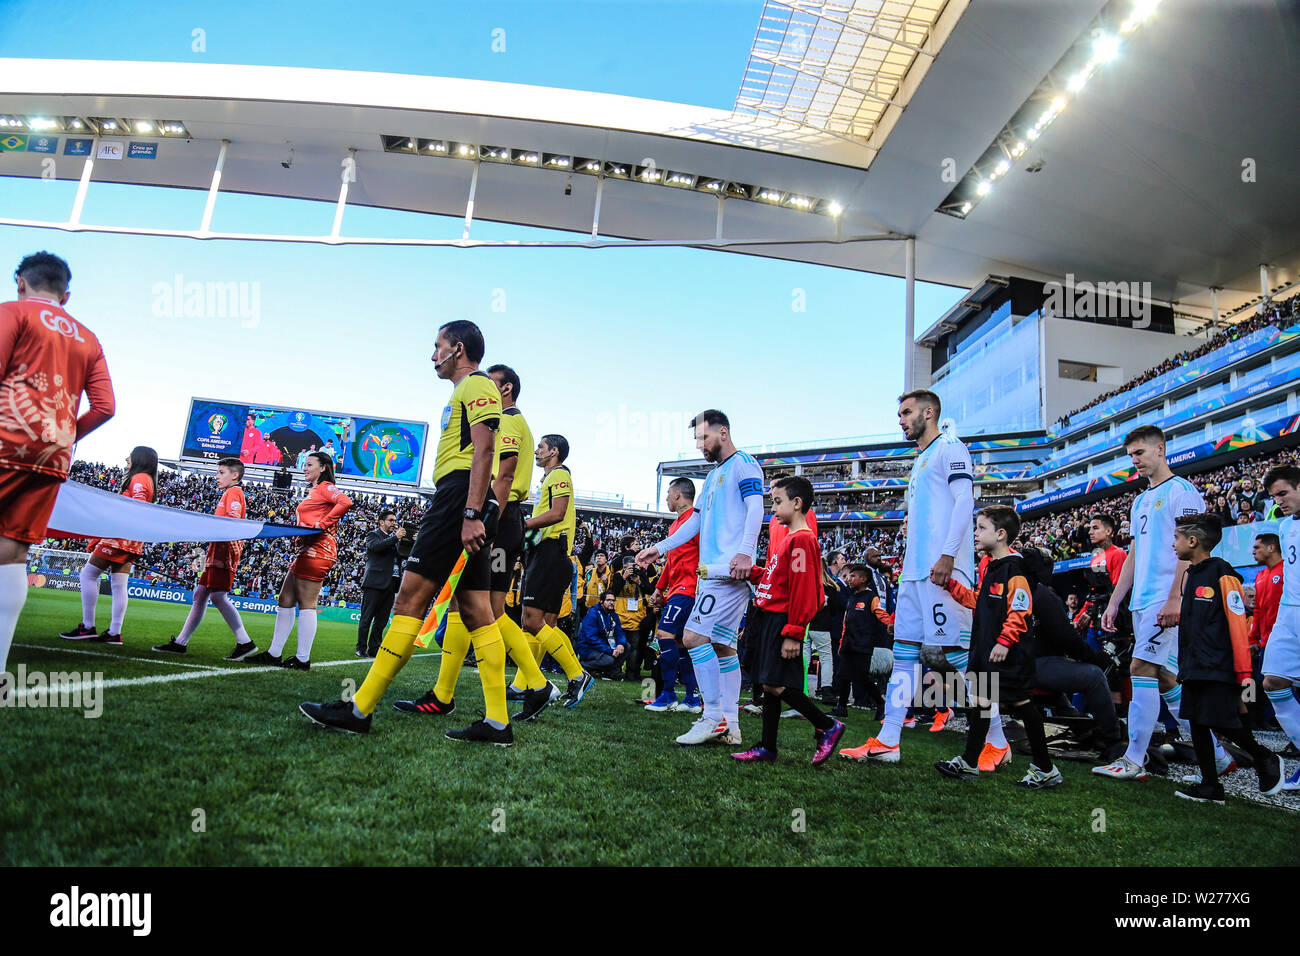 Brazil. 6th July, 2019. Lionel Messi in the Game of the match between Argentina X Chile valid for third place dispute of Copa America 2019, in the Arena Corinthians, in São Paulo, this Saturday (06). Photo: Geraldo Bubniak Credit: Geraldo Bubniak/ZUMA Wire/Alamy Live News - Stock Image